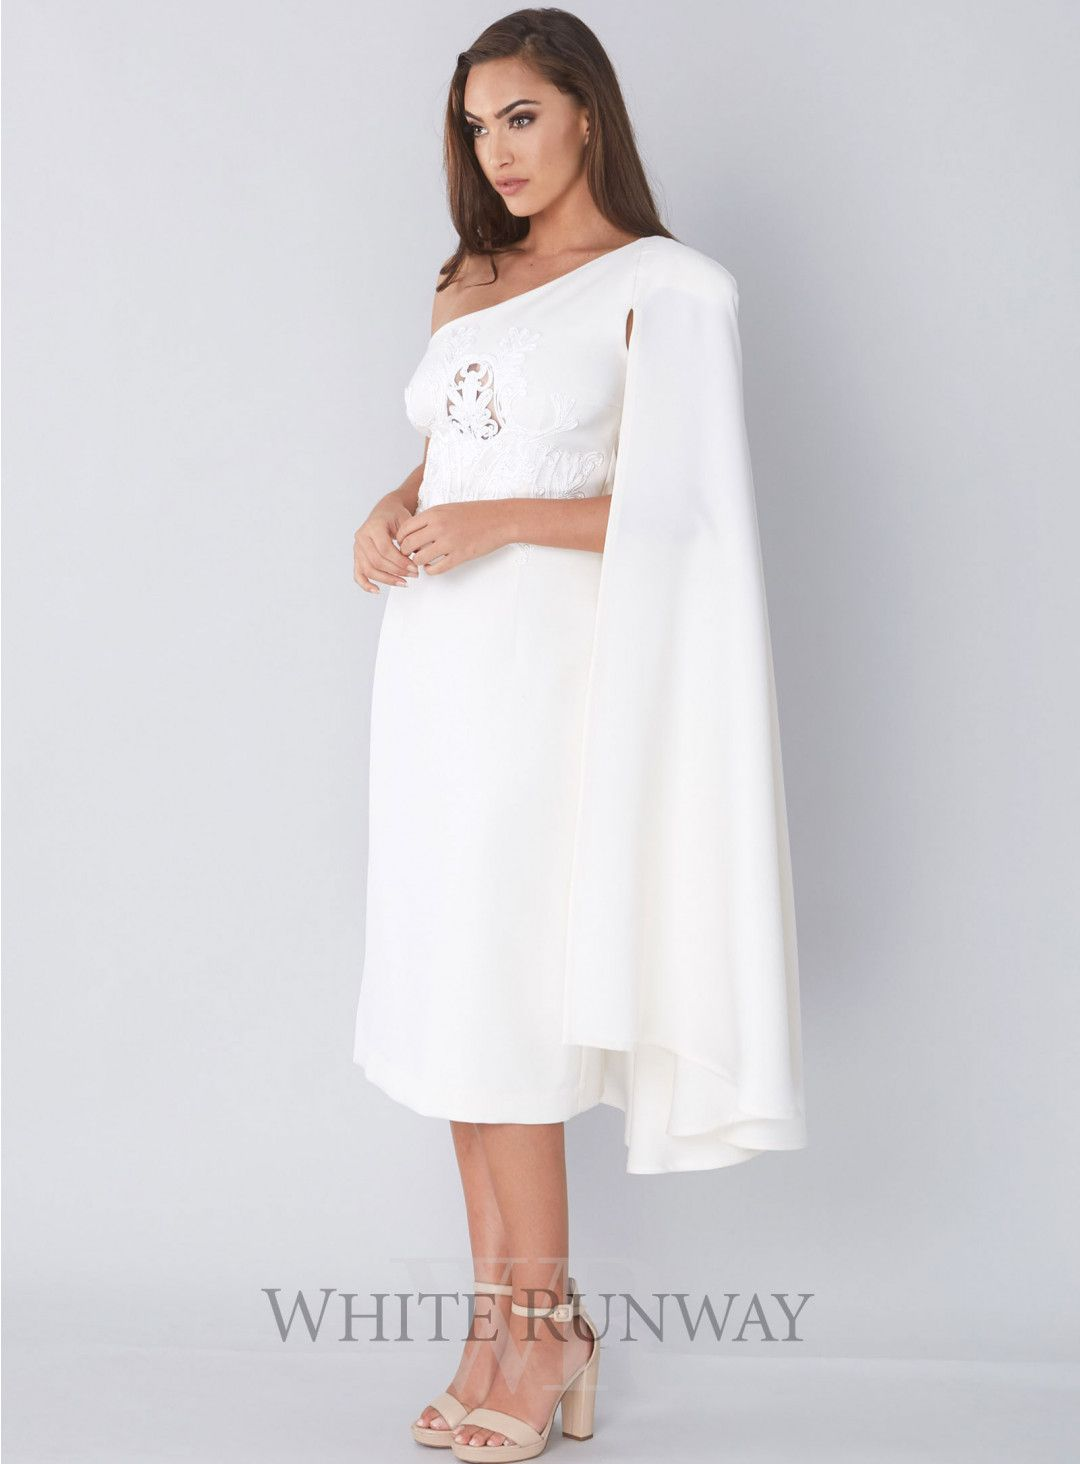 Thurley wedding dress  Granda Flora Cape Dress by Thurley  Grecian Theme Weddings